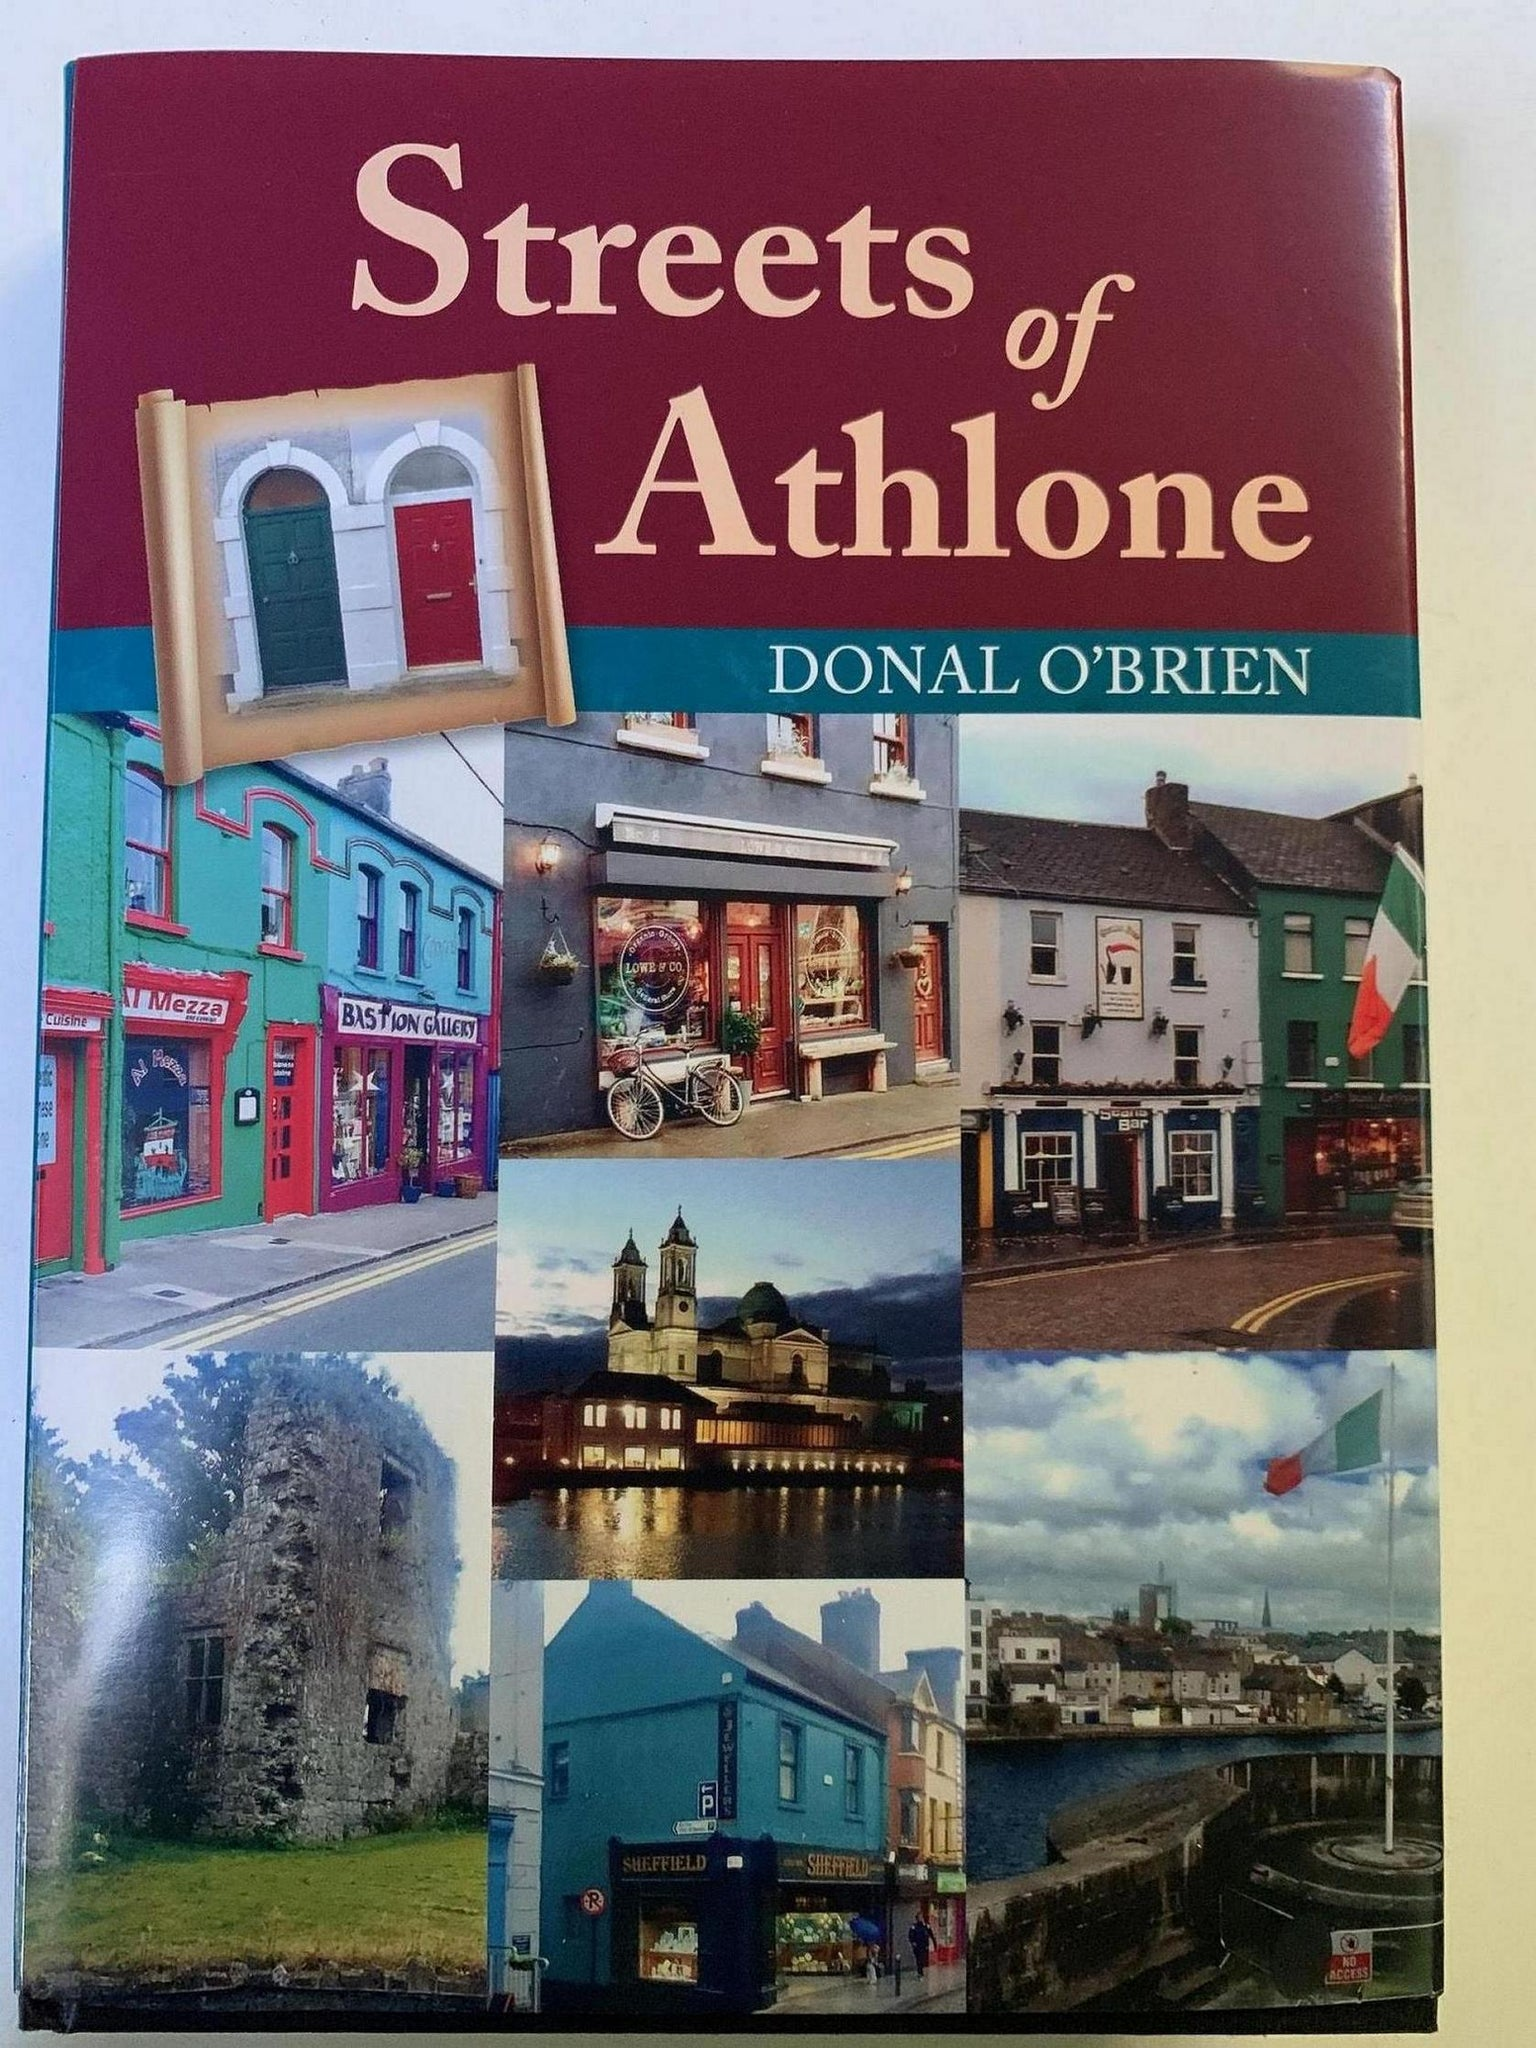 The Streets of Athlone, Donal O Brien